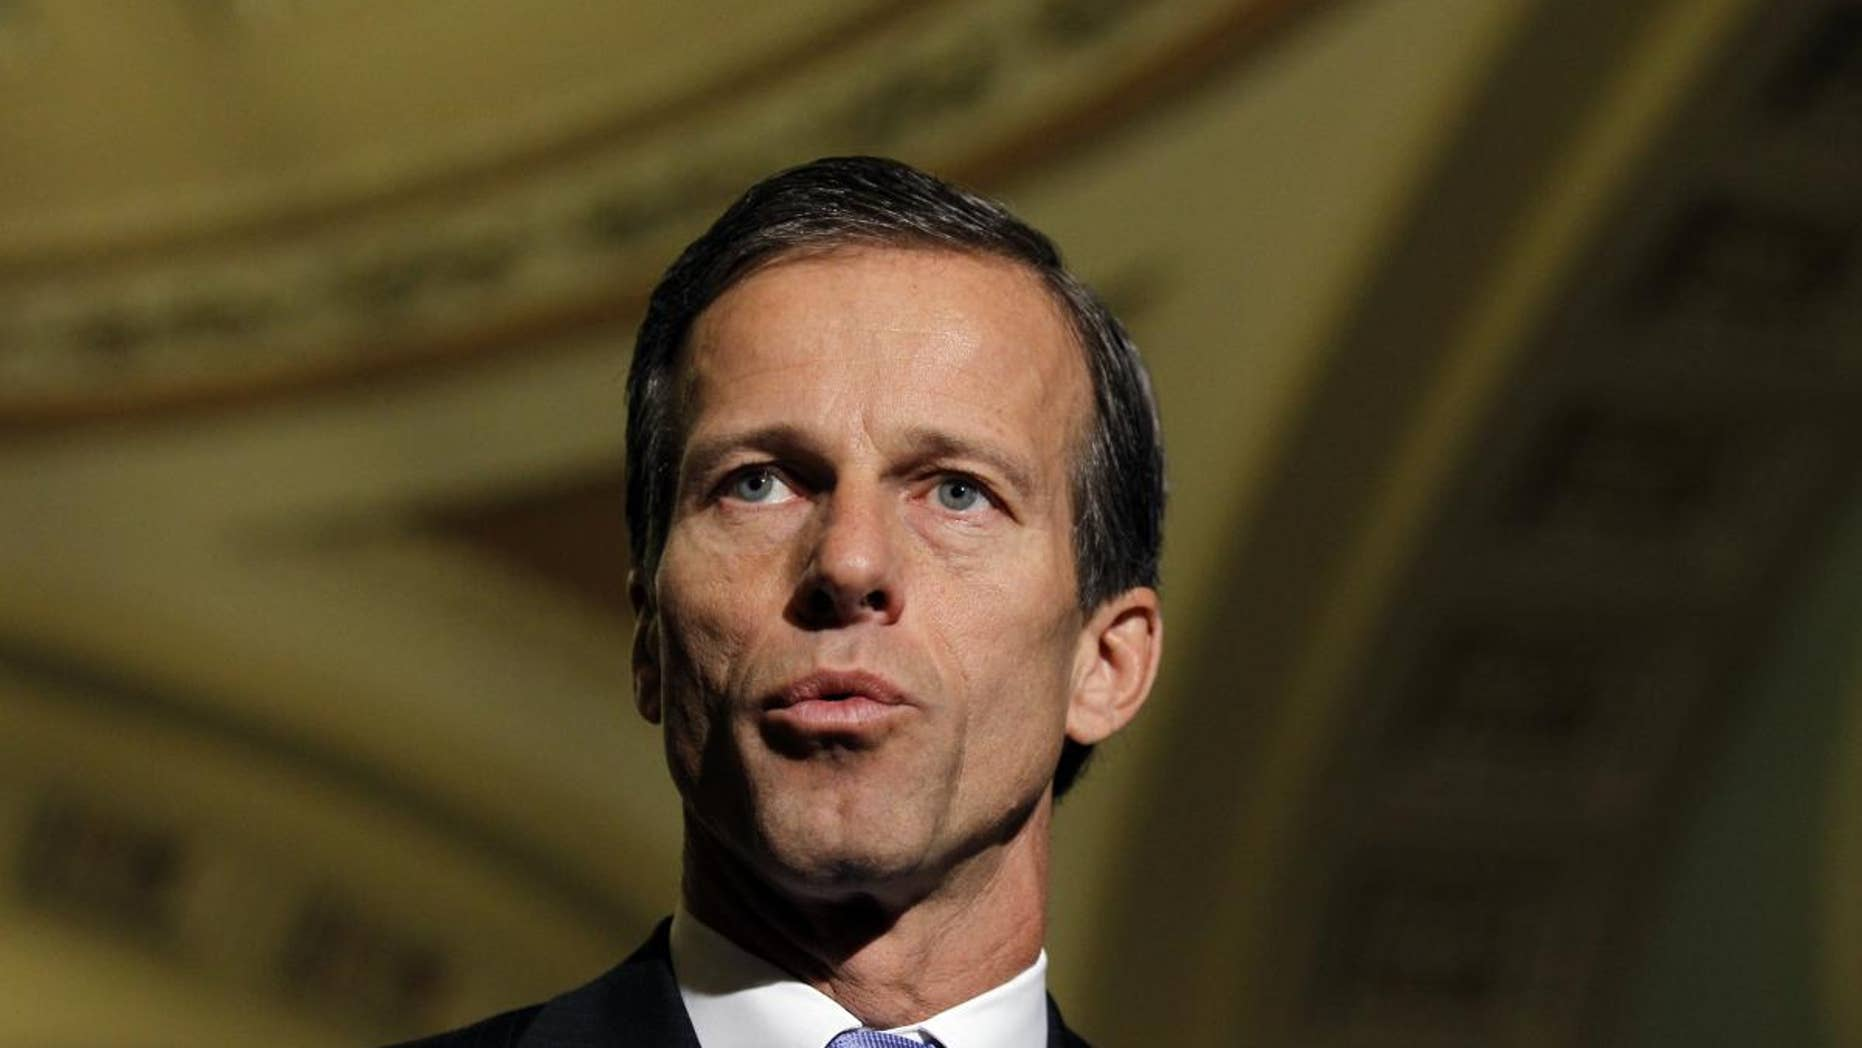 Sen. John Thune, R-S.D., speaks during a news conference on Capitol Hill in Washington Tuesday, Nov. 16, 2010.(AP Photo/Alex Brandon)